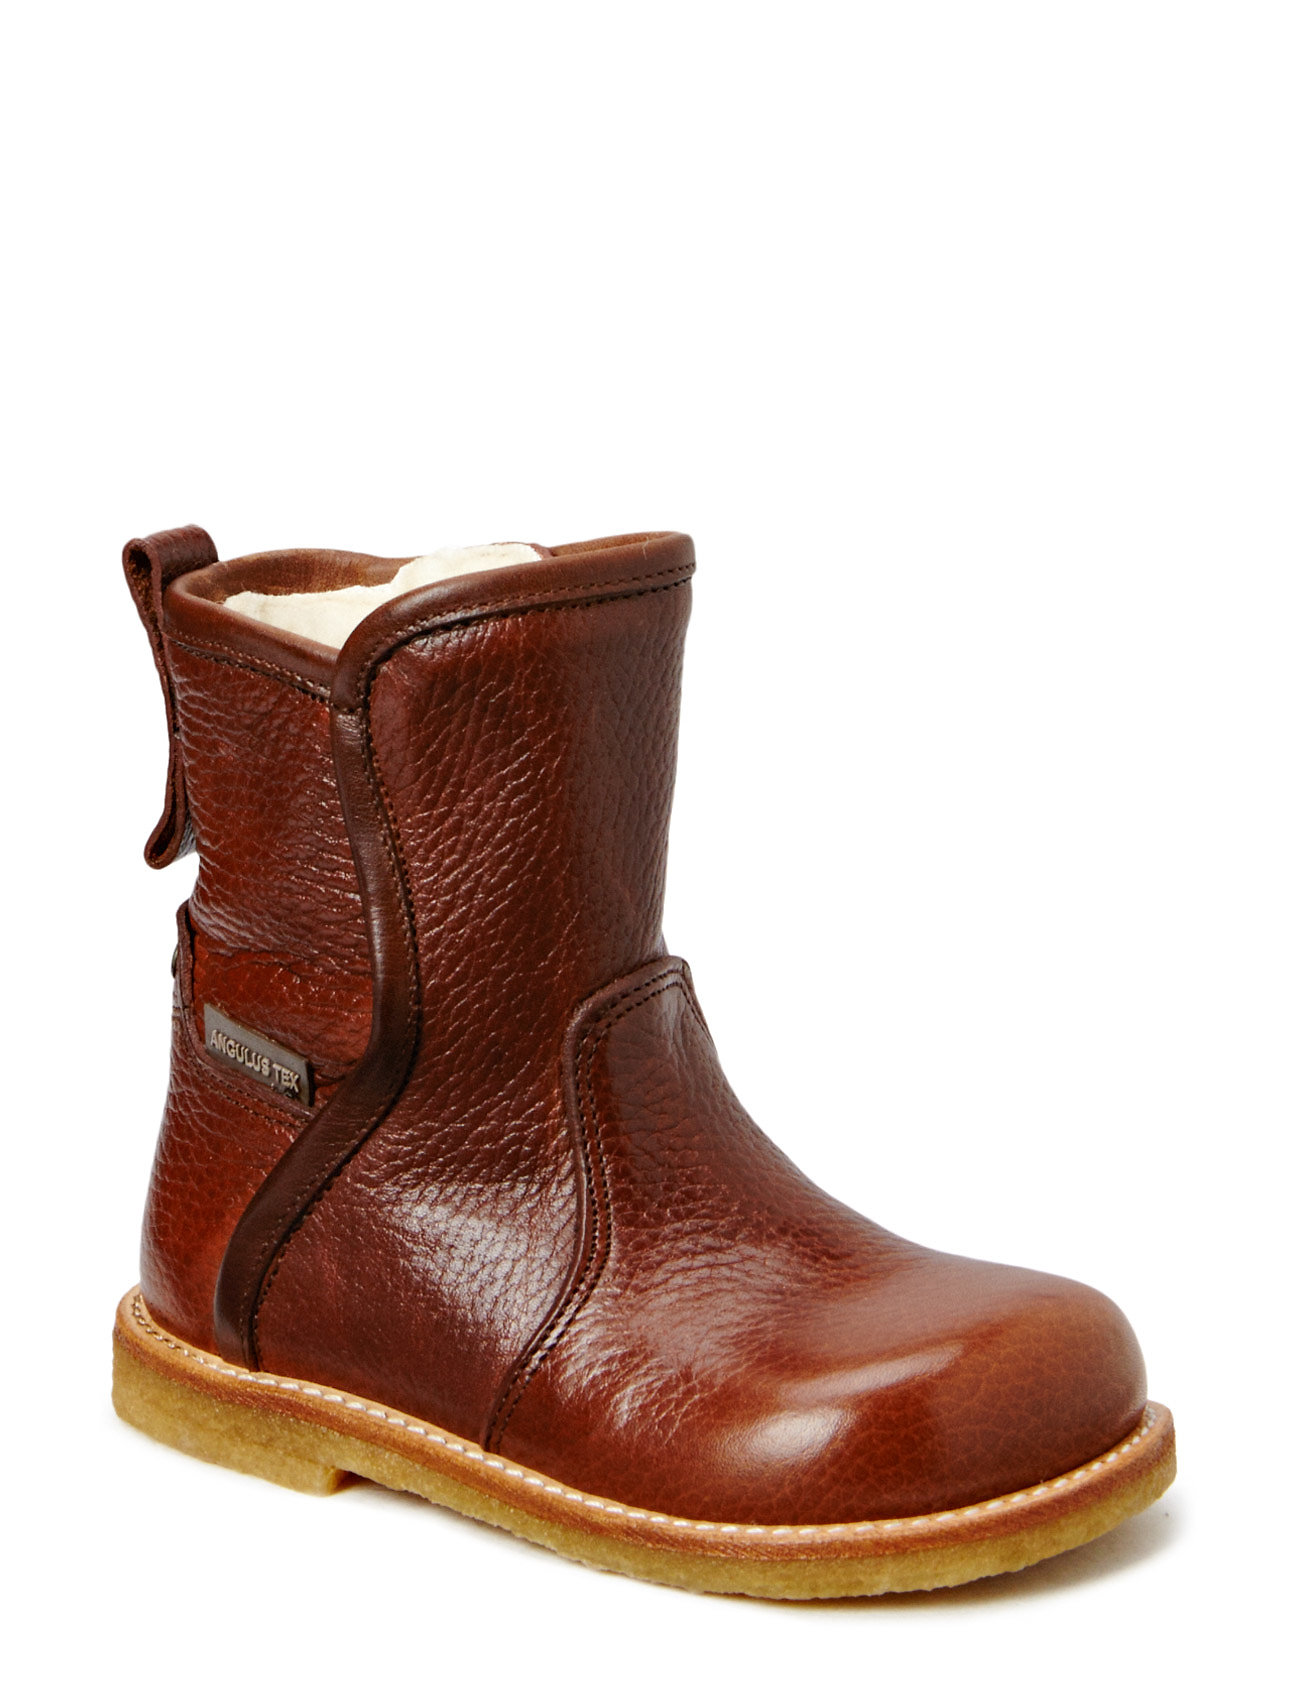 ANGULUS Boots - flat - with zipper - 2509/1589 RED-BROWN